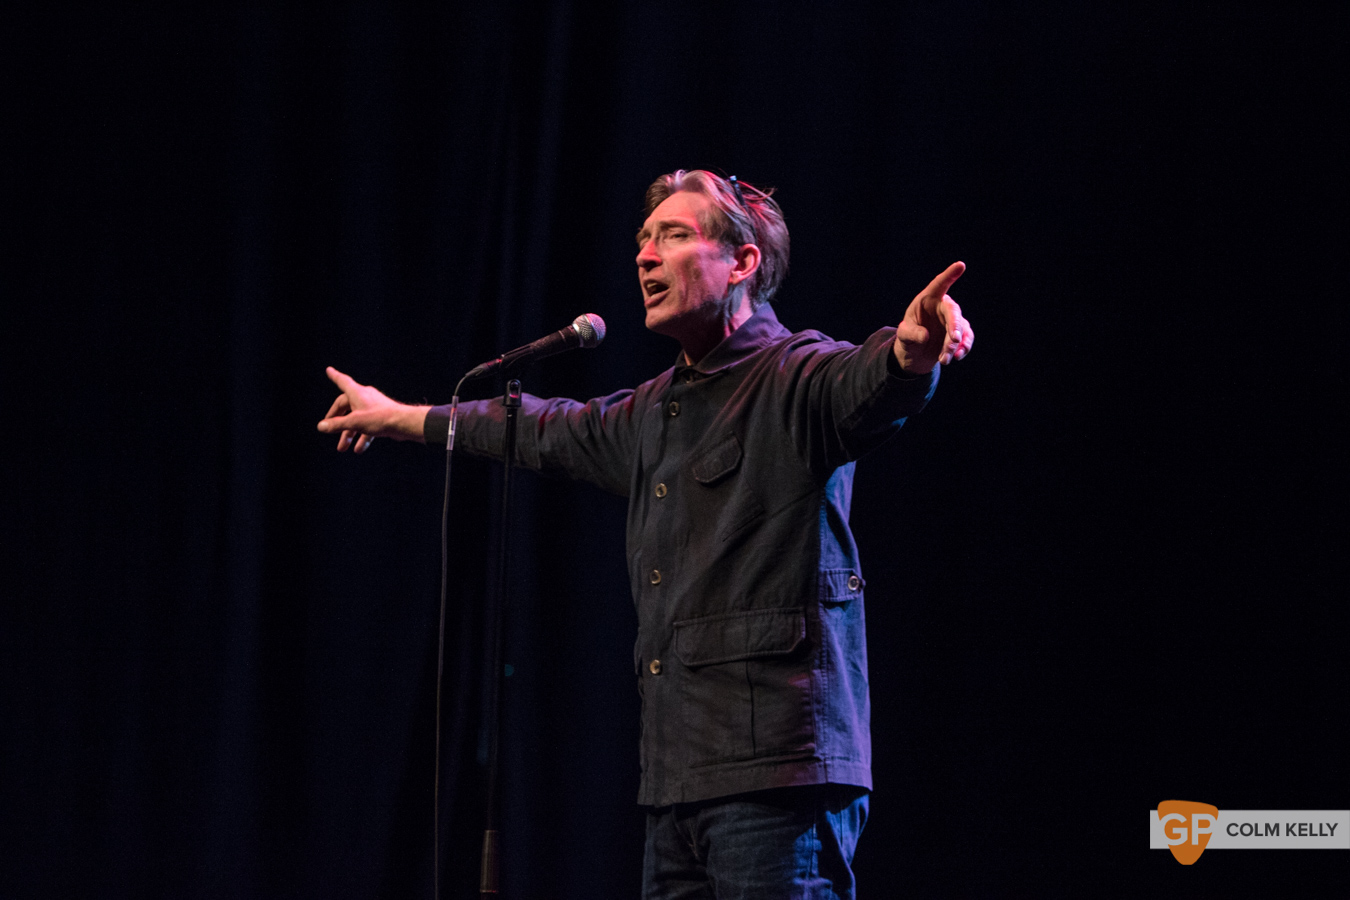 Mike Garry at Vicar Street, Dublin 19.3.2019 by Colm Kelly